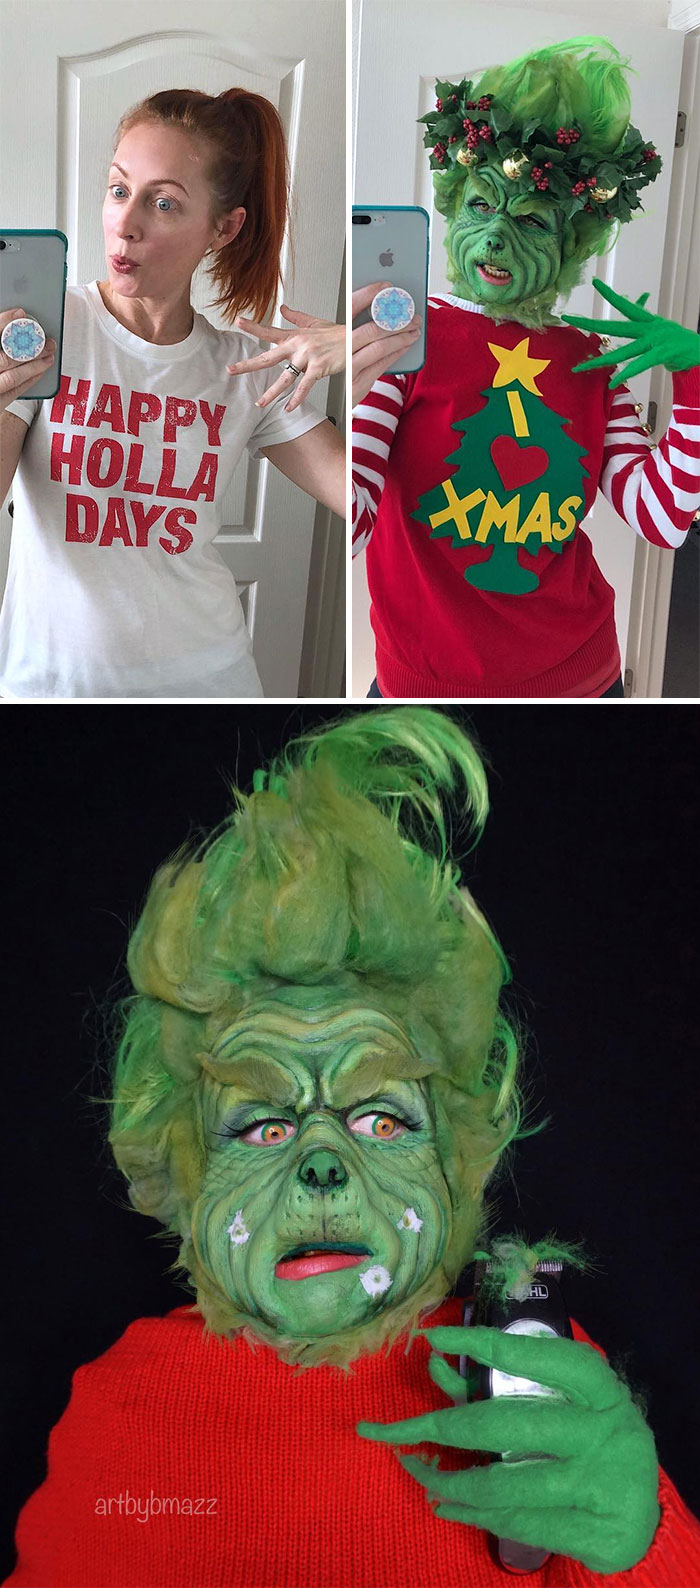 brenna mazzoni epic cosplay transformations grinch